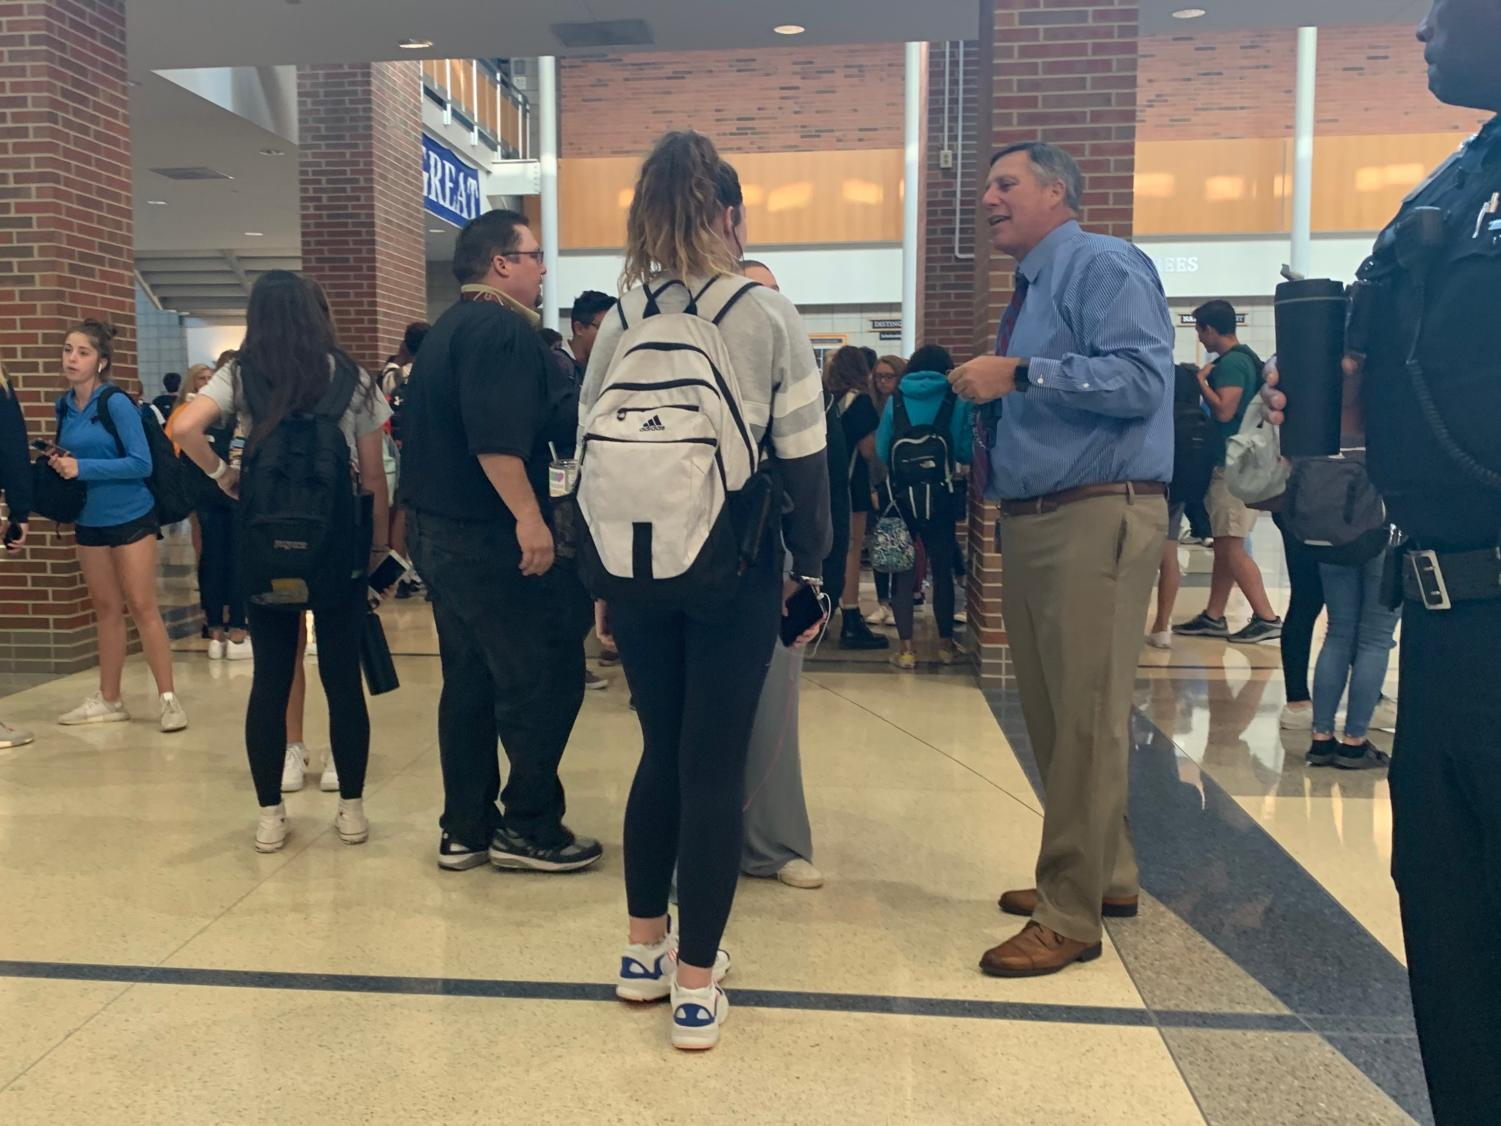 Principal Tom Harmas converses with students in the hallway during a passing period. He said he's excited to see all the homecoming changes in action and how the student body reacts to them.